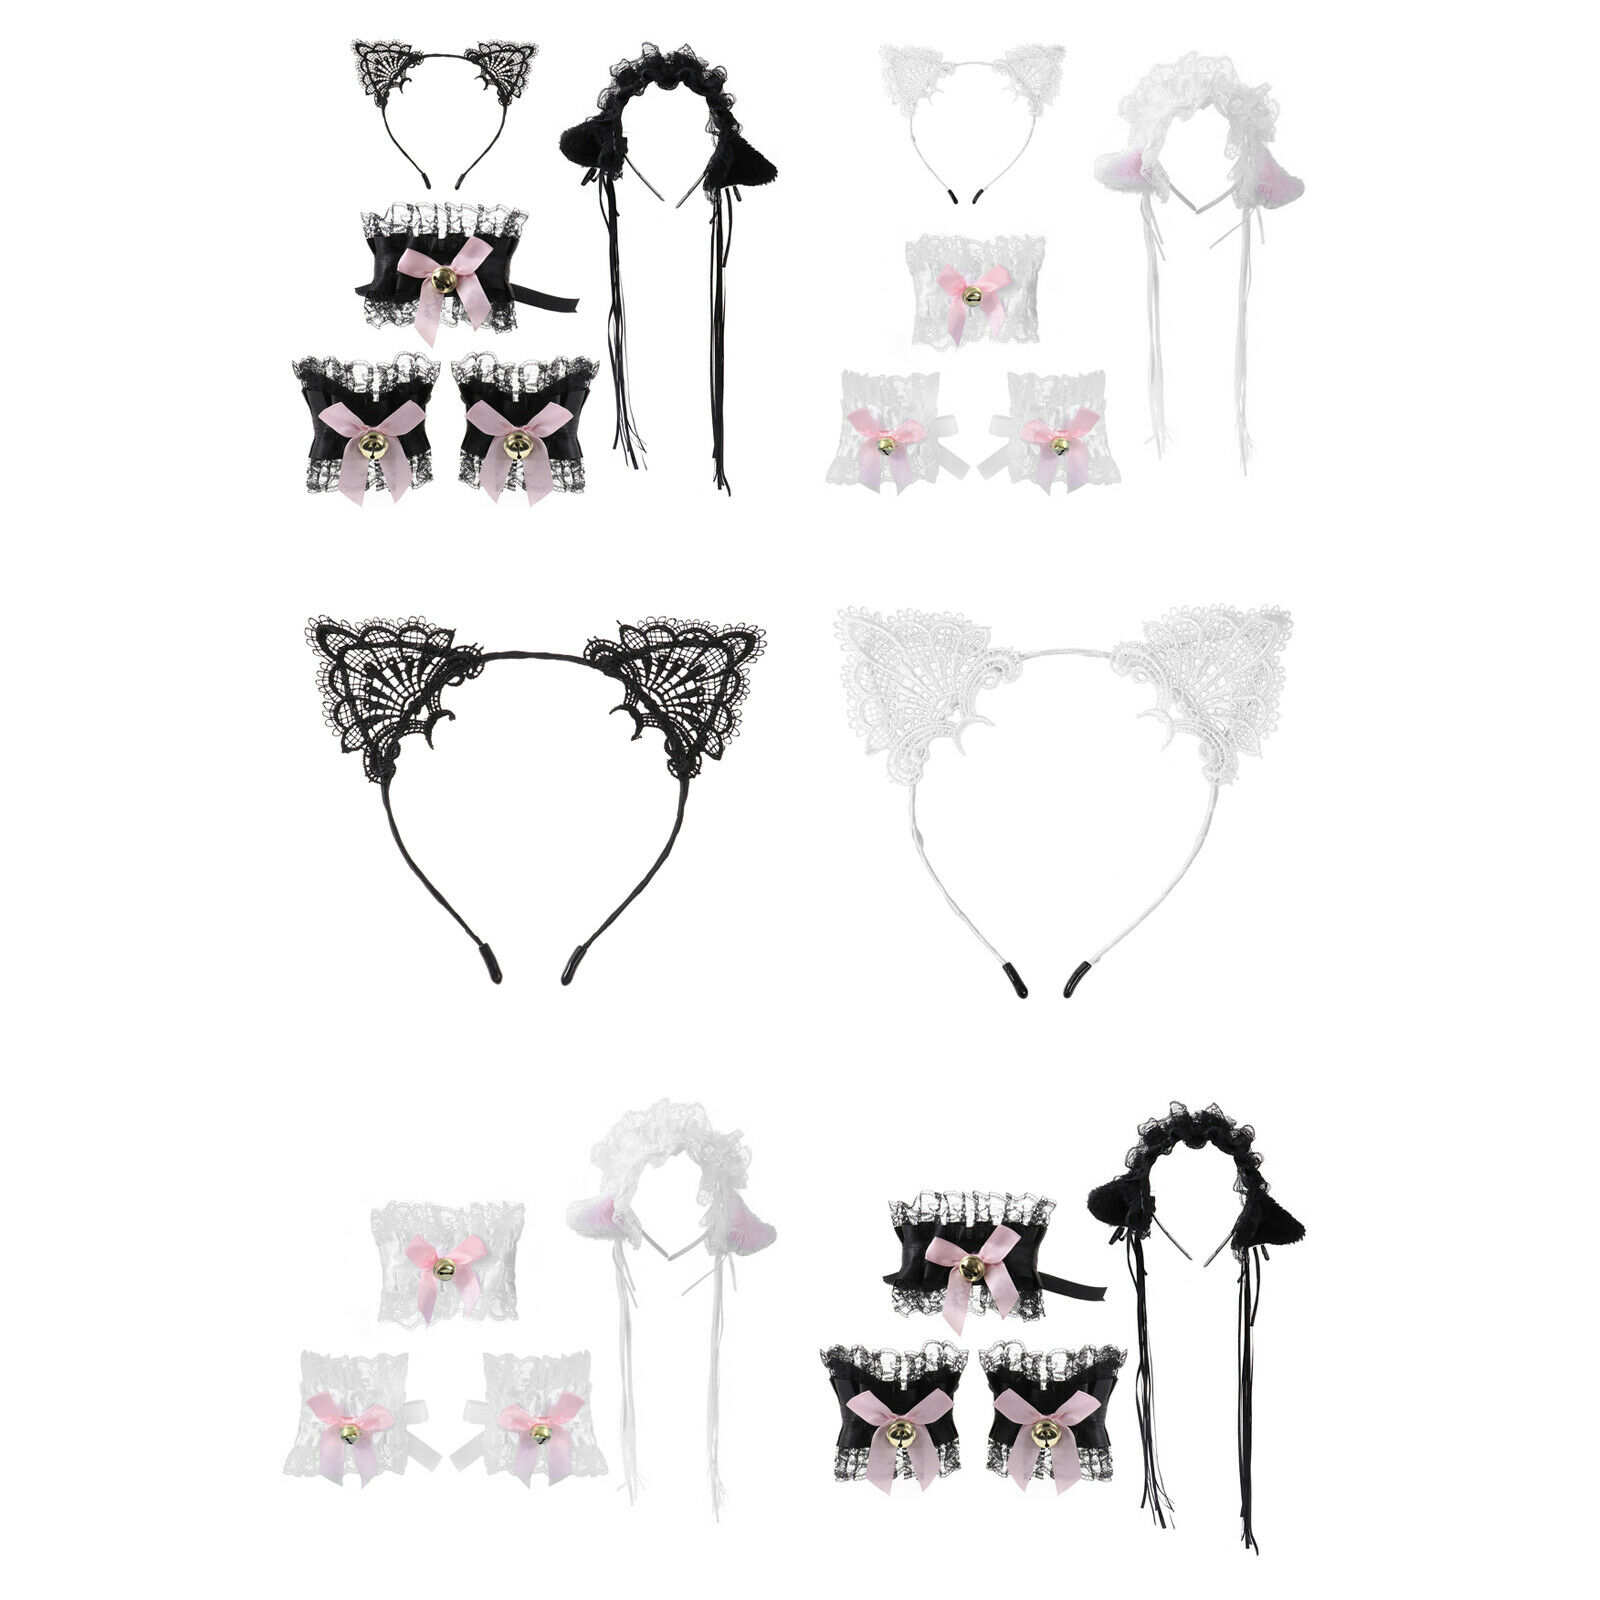 Lace Ruffle Bells Cat Ears Hair Hoop Neck Collar Cuffs Wristband Party Accessory